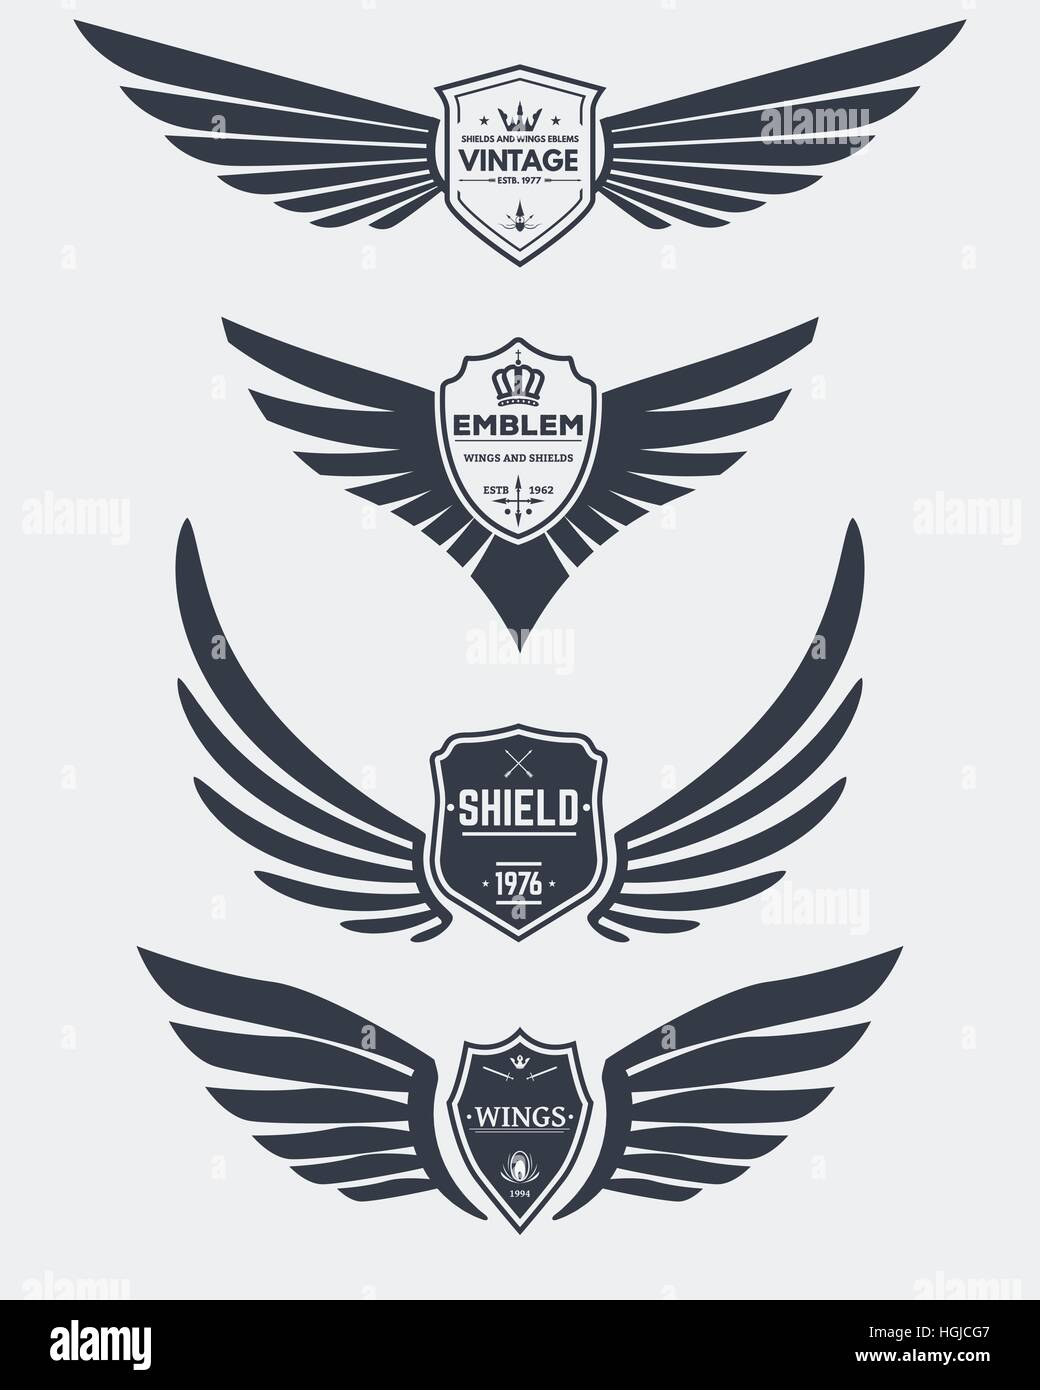 Vector vintage emblem with shield and wings stock photo 49442387 vintage wings shield set of inked modern wings and shields icons and emblems for logos coat of arms biocorpaavc Choice Image